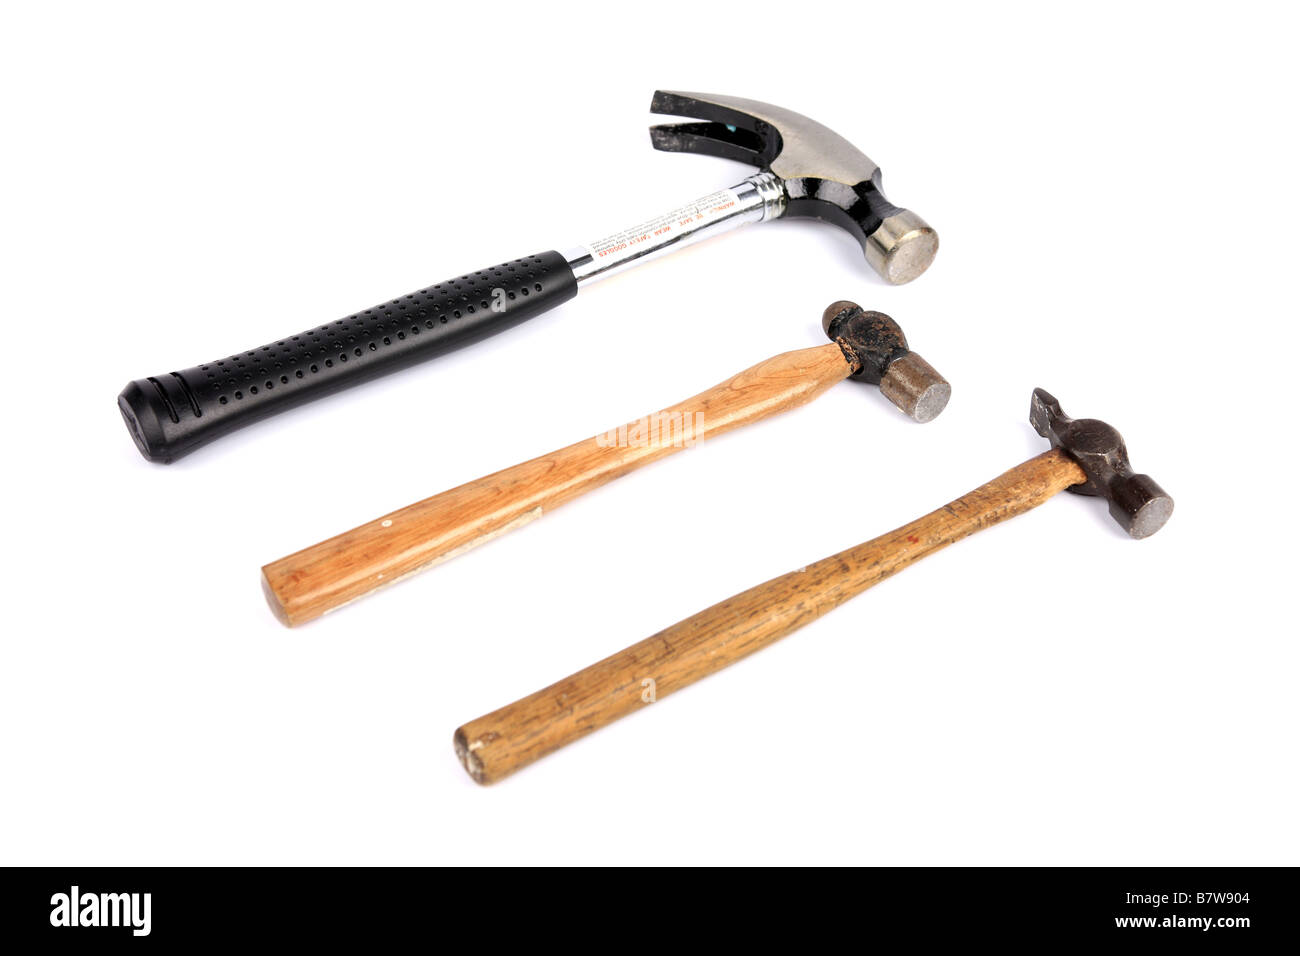 Three different types of hammer against a white background - Stock Image